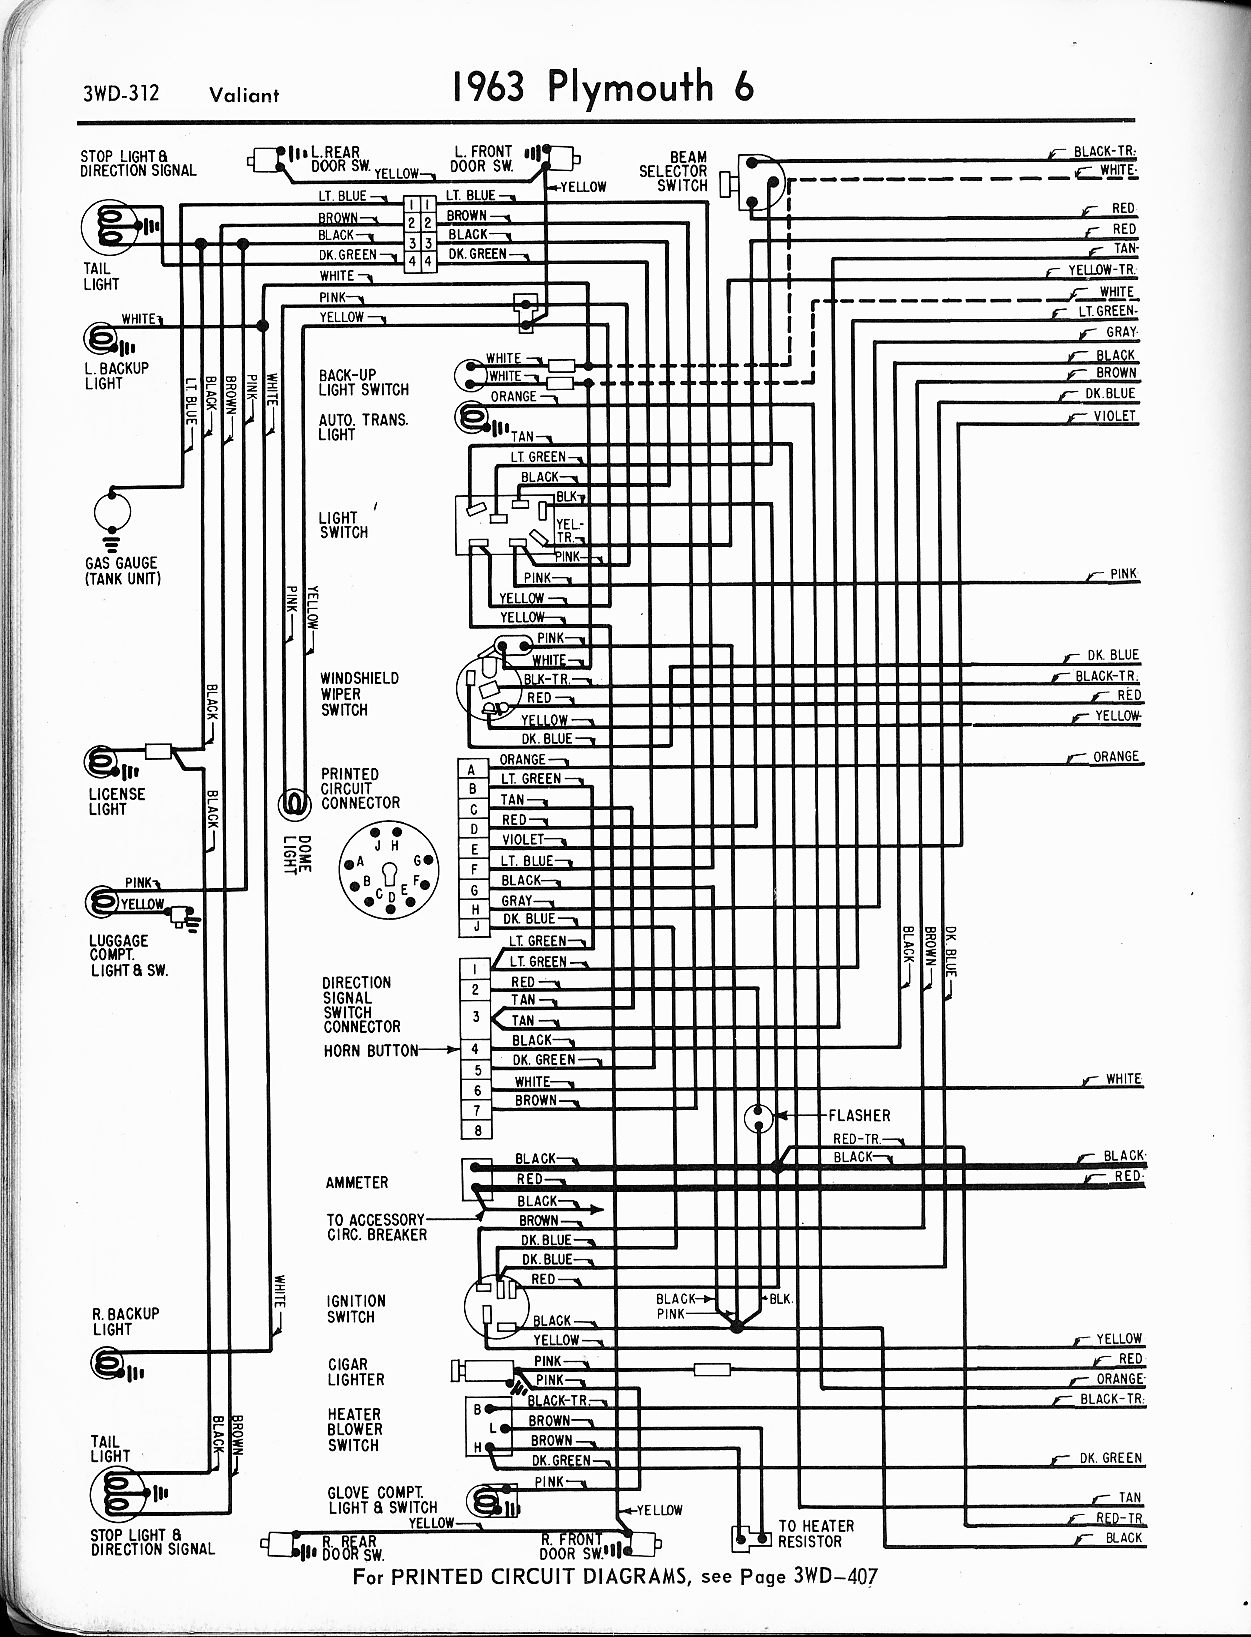 plymouth engine schematics the mopar chrysler dodge plymouth b series v engines plymouth acclaim